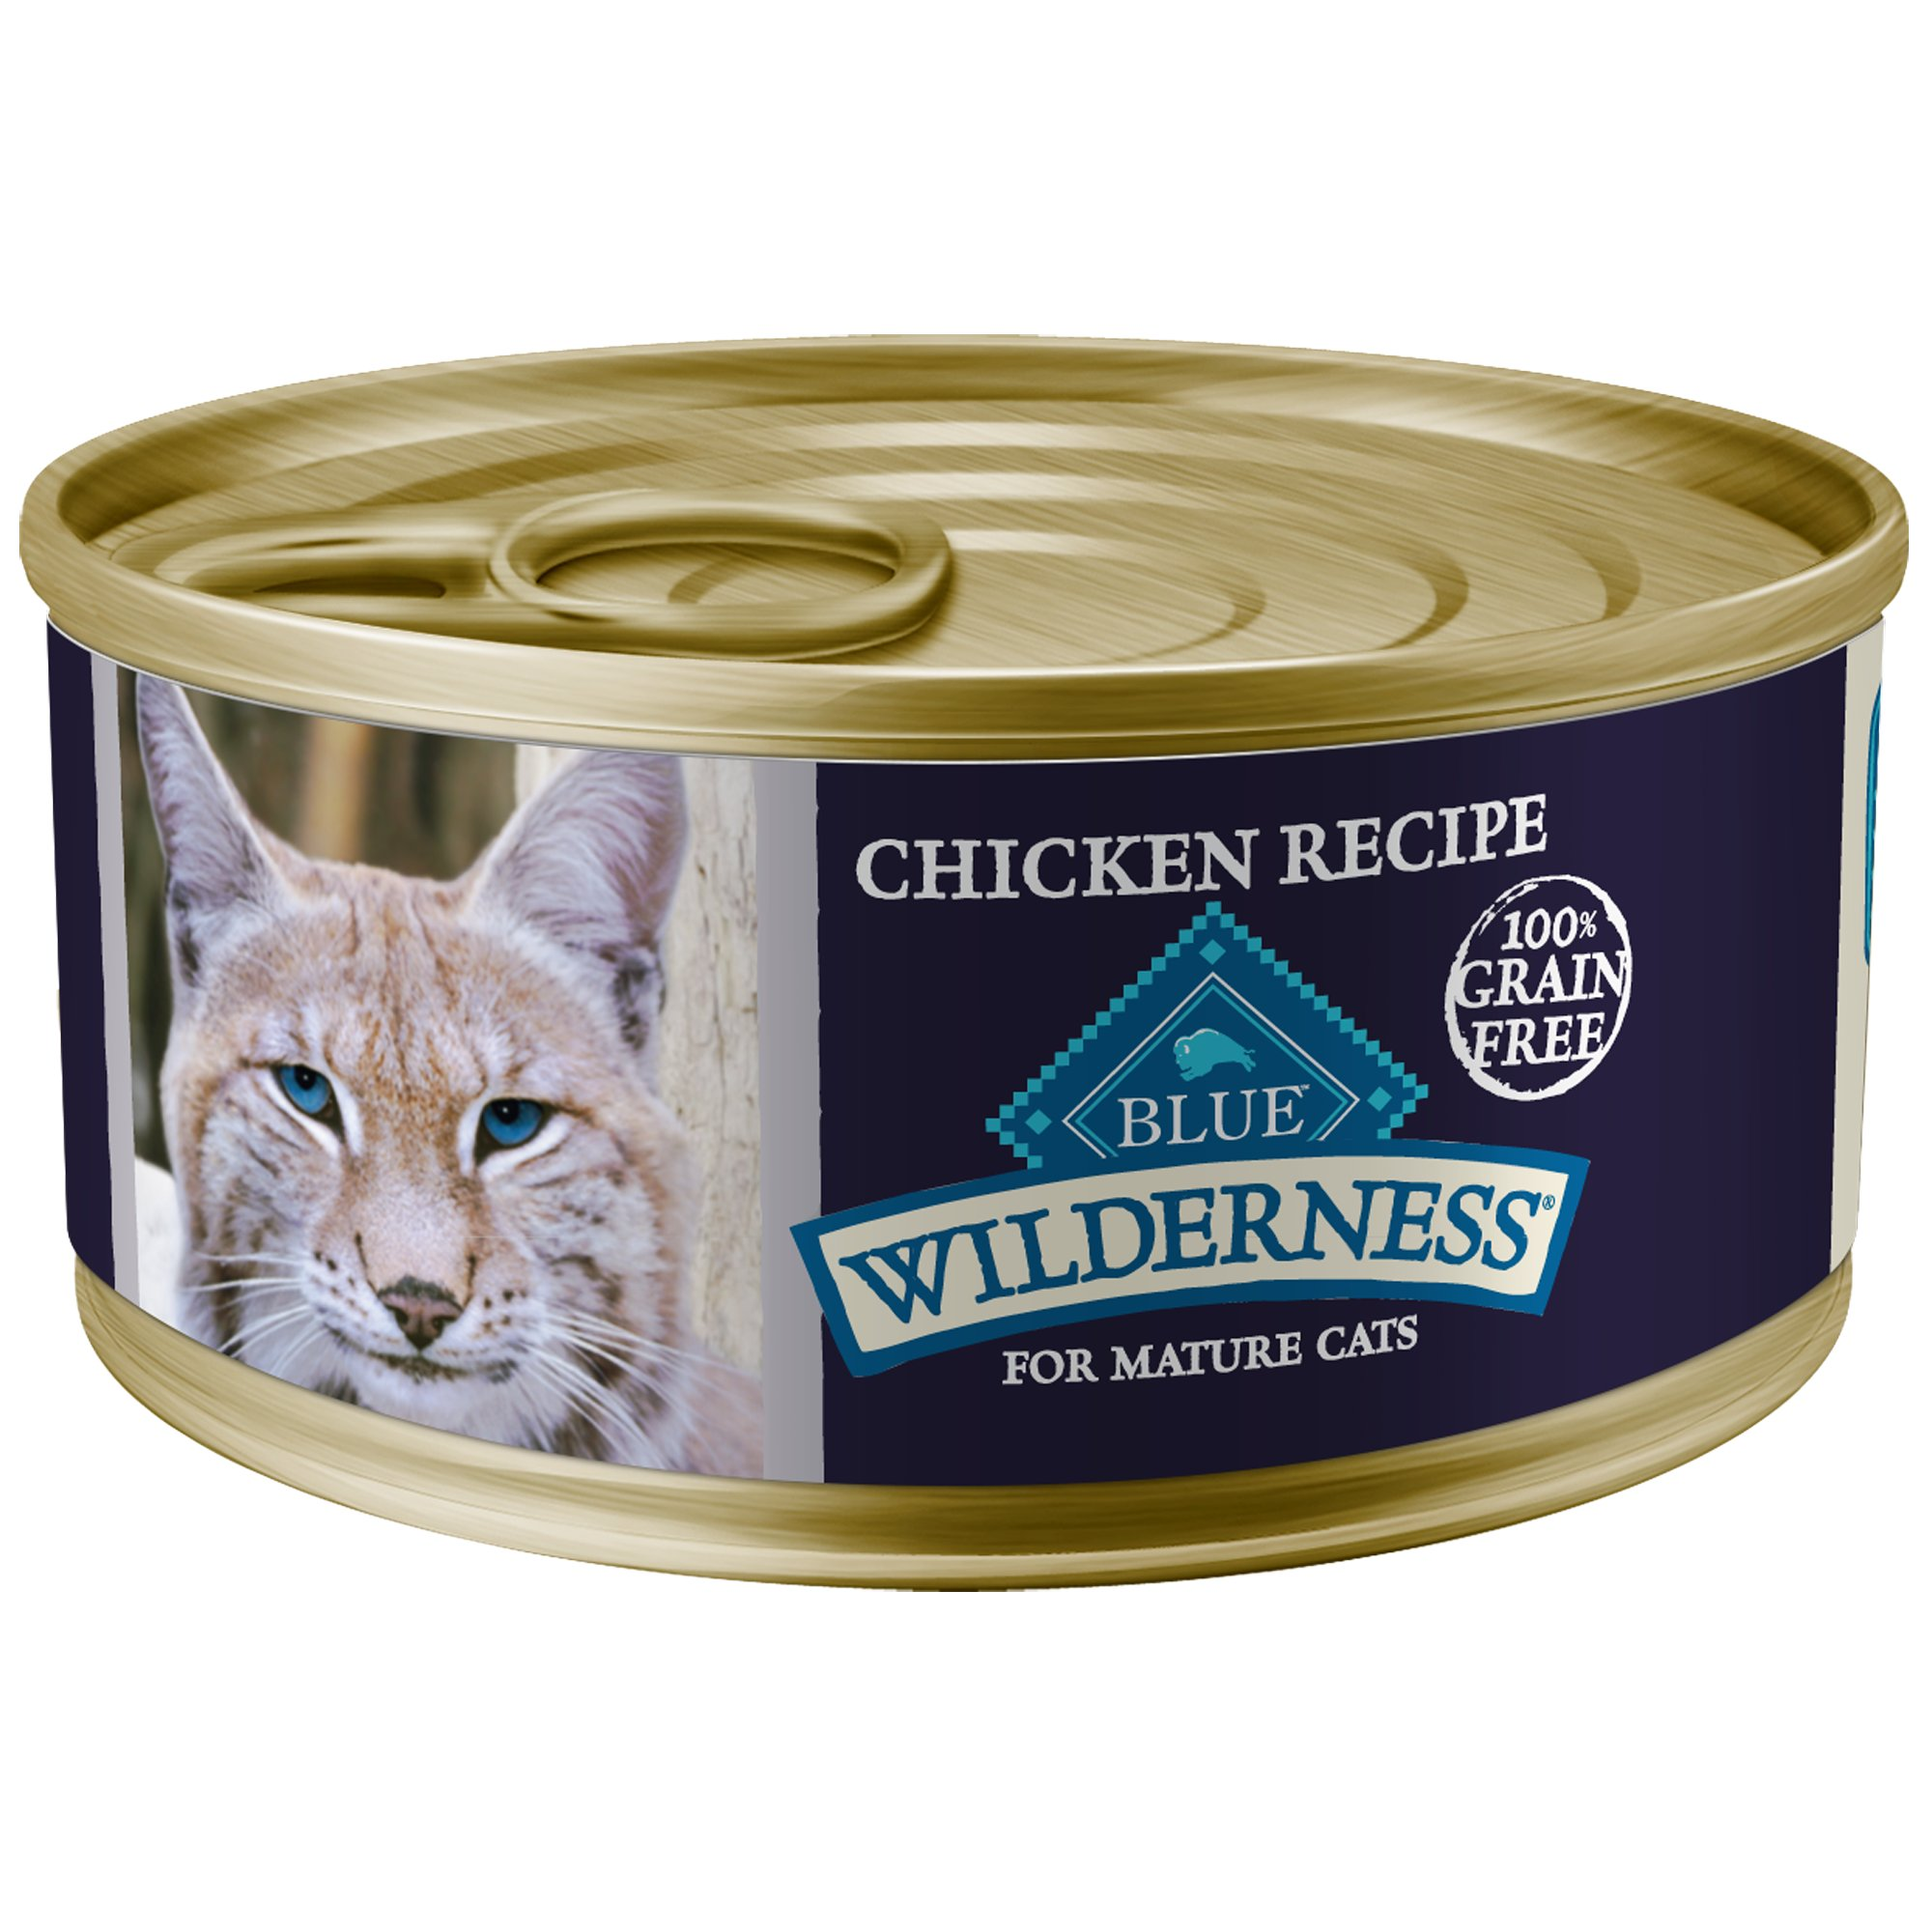 Blue Wilderness Mature Canned Cat Food